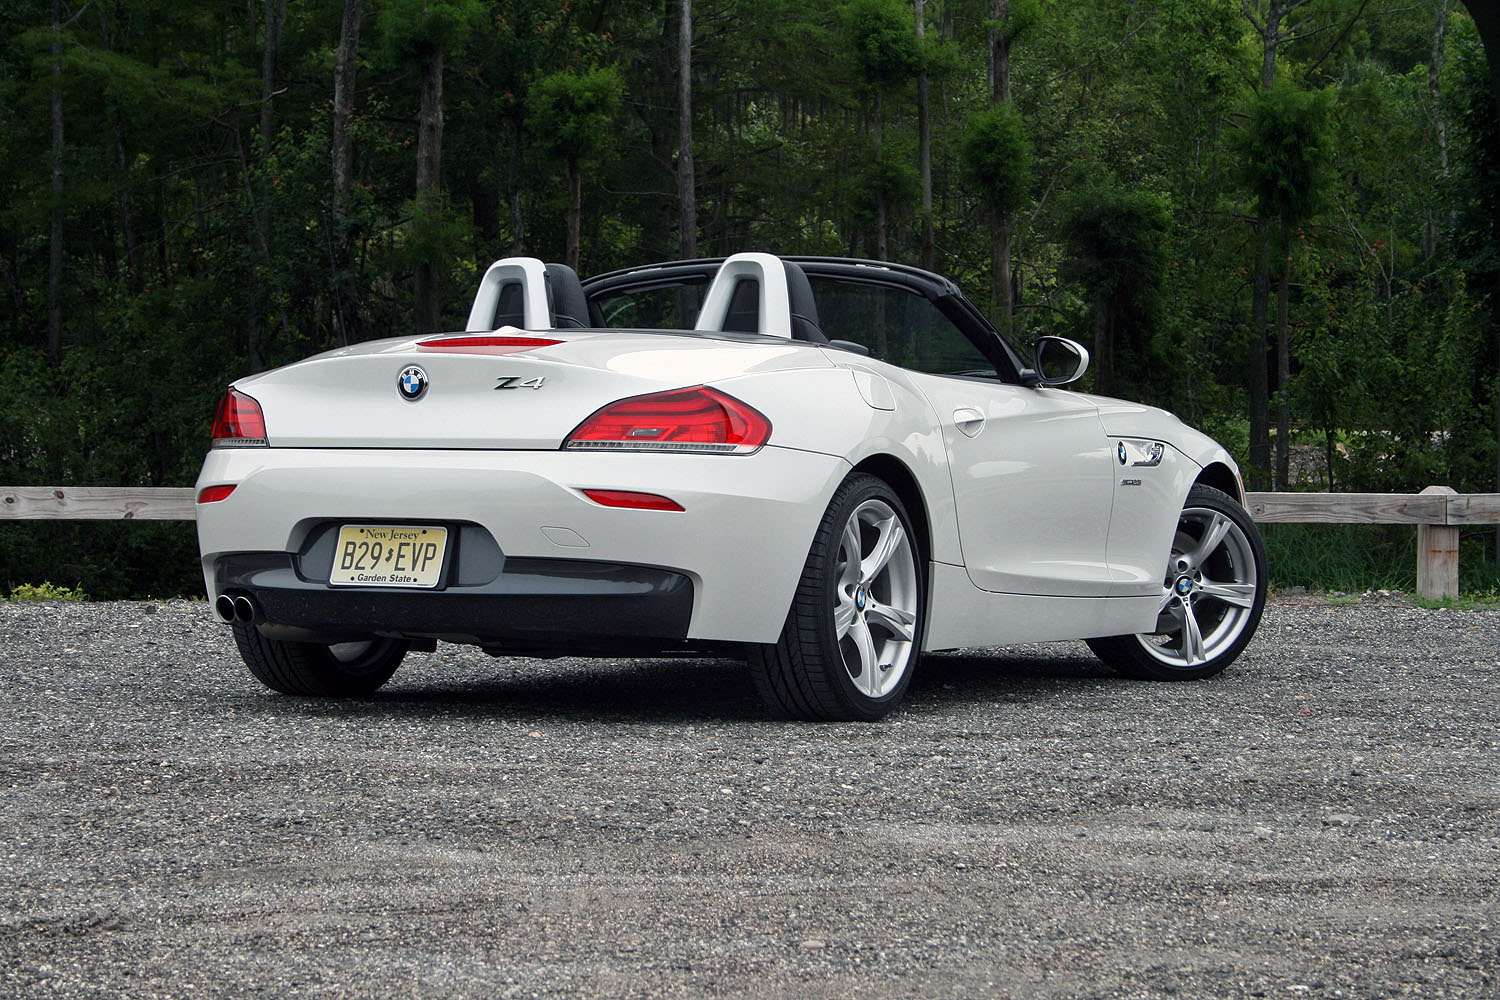 2015 Bmw Z4 Driven Gallery 636307 Top Speed